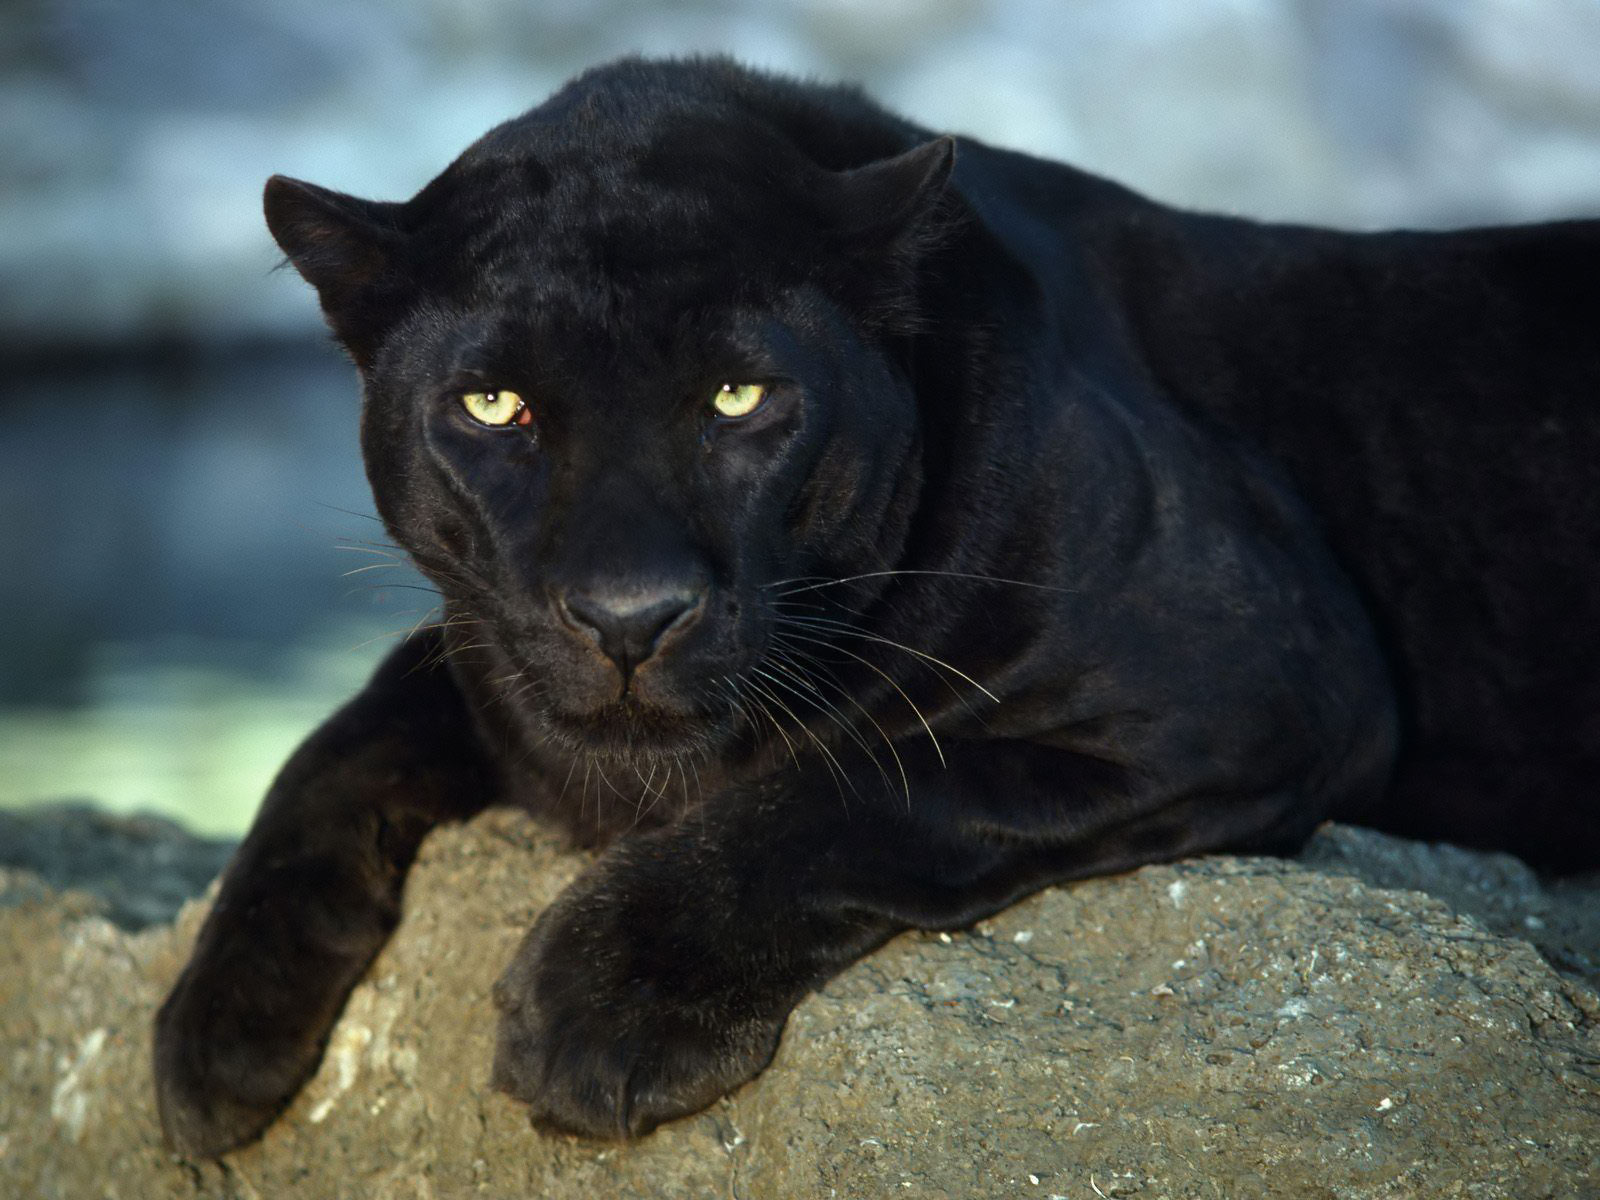 Panther Lying on the Rock